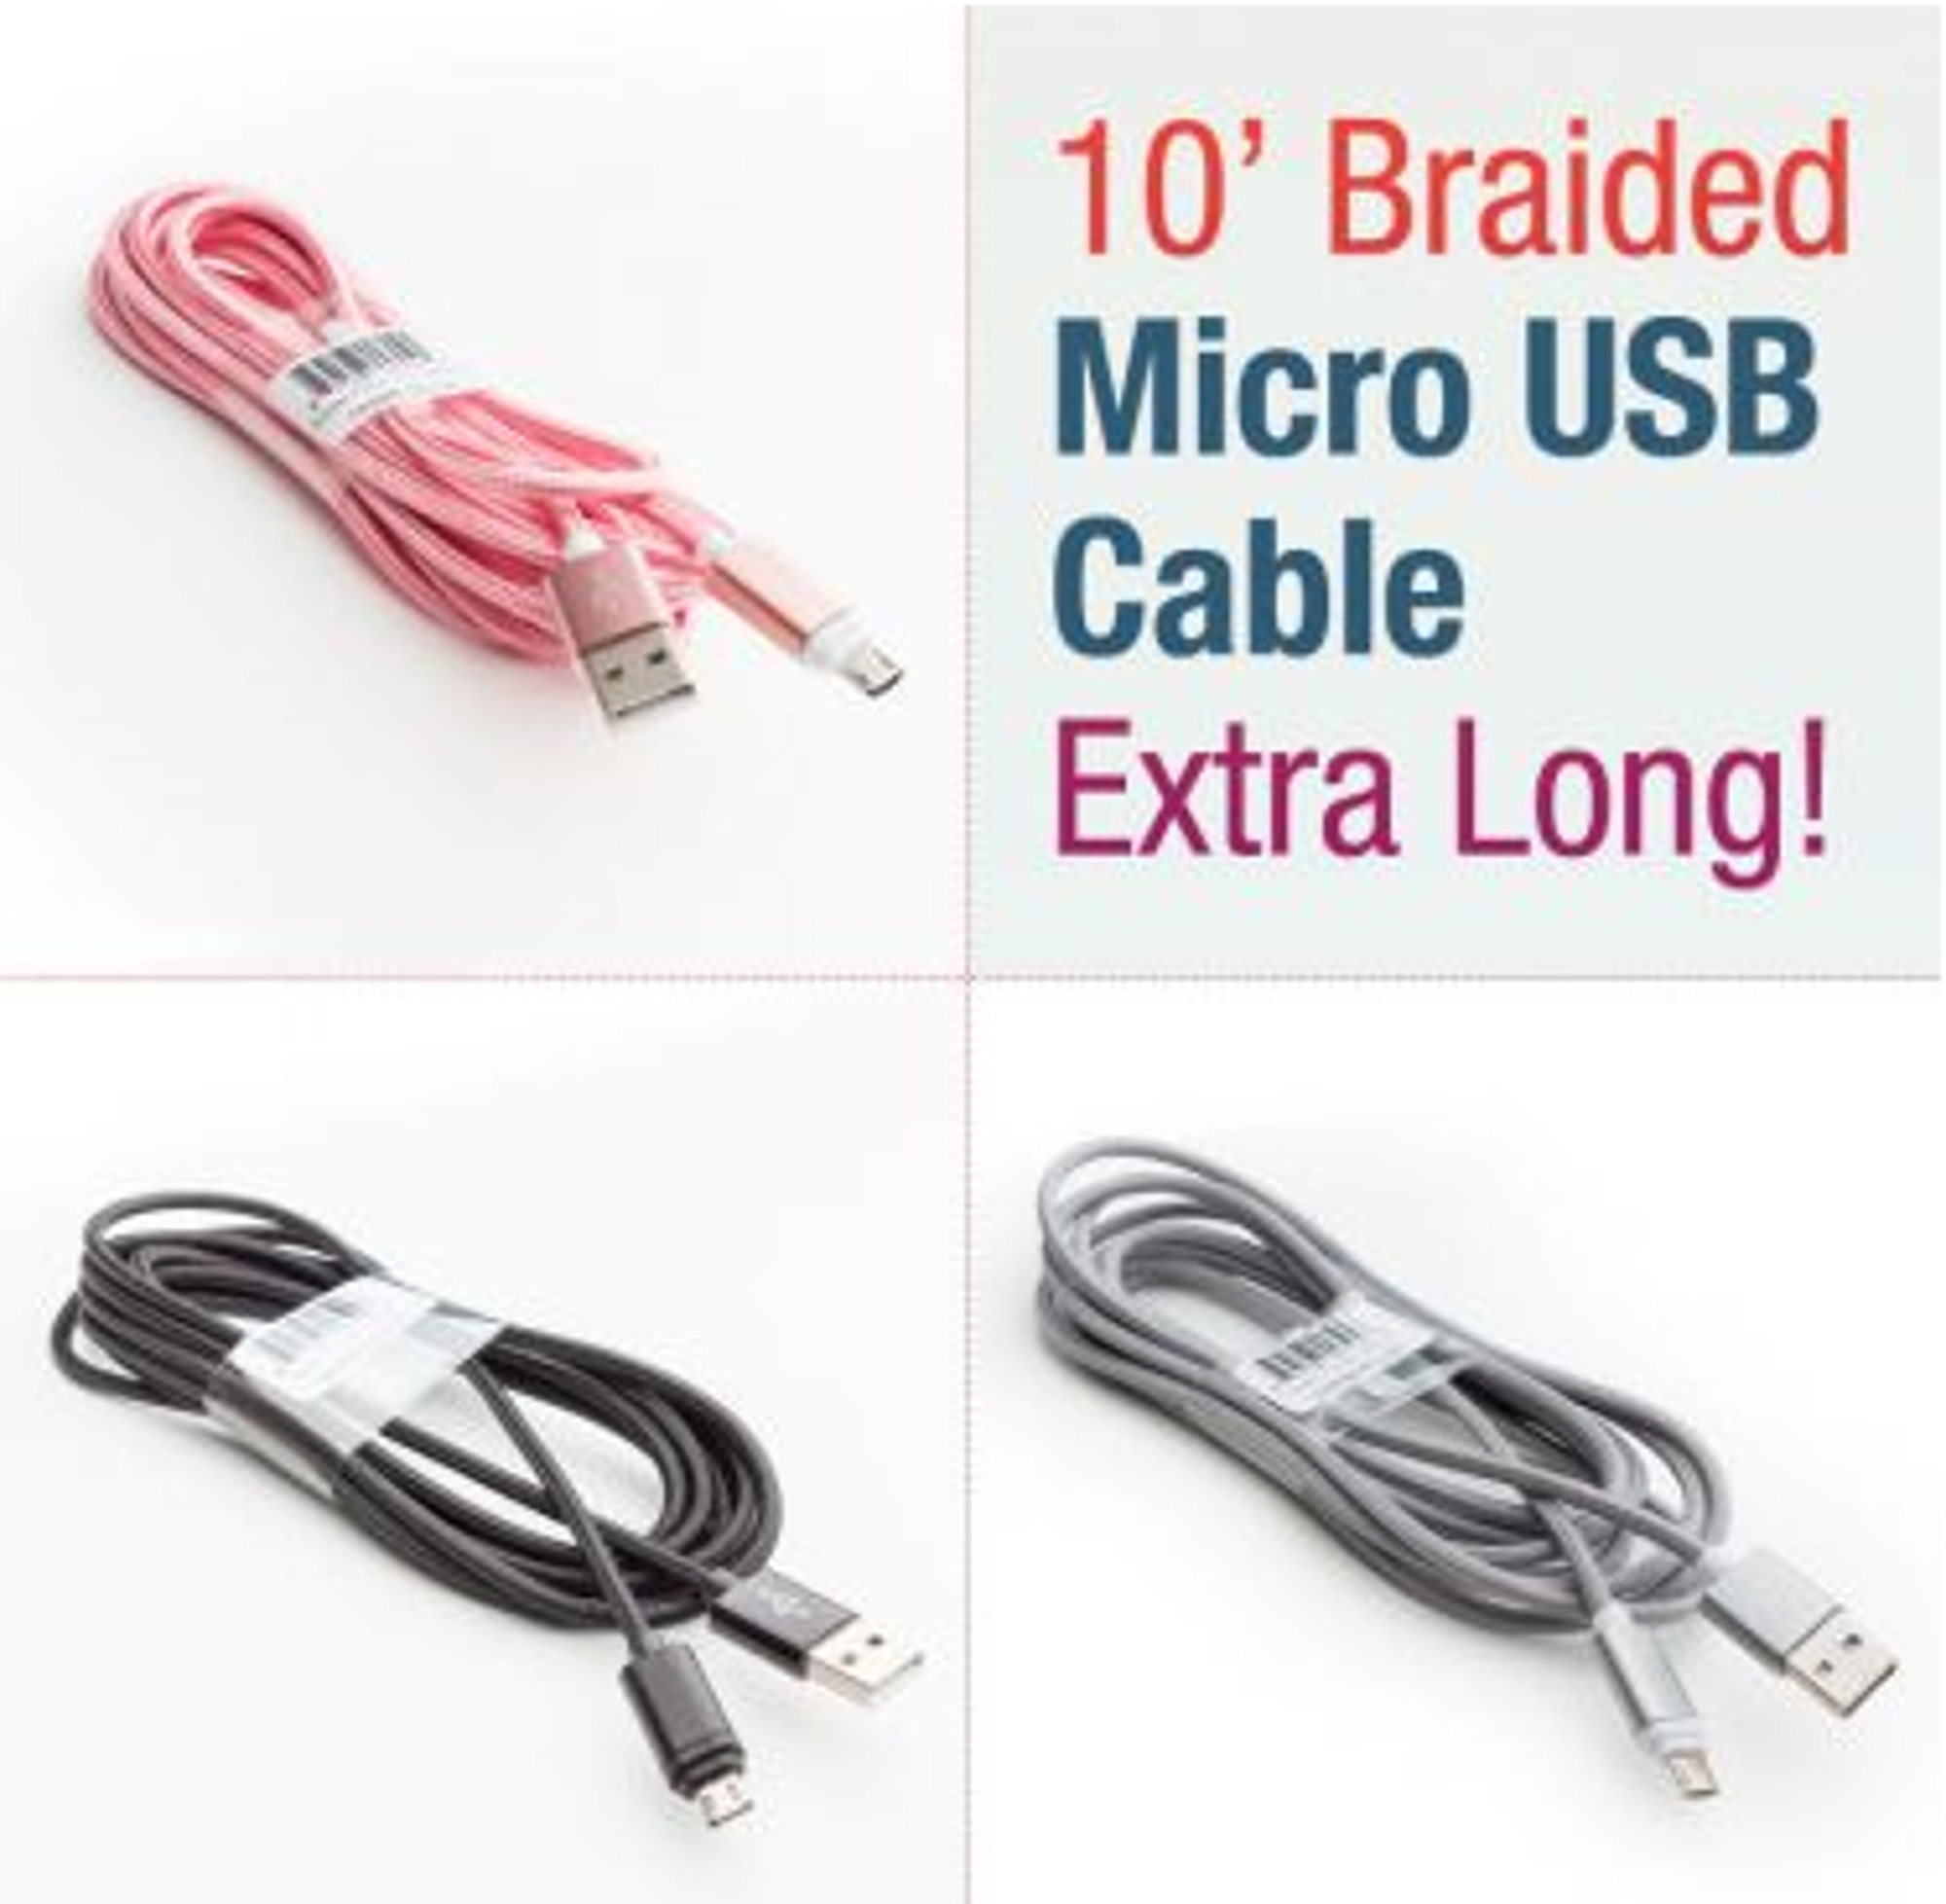 image of: 10' Braided Micro USB Cable